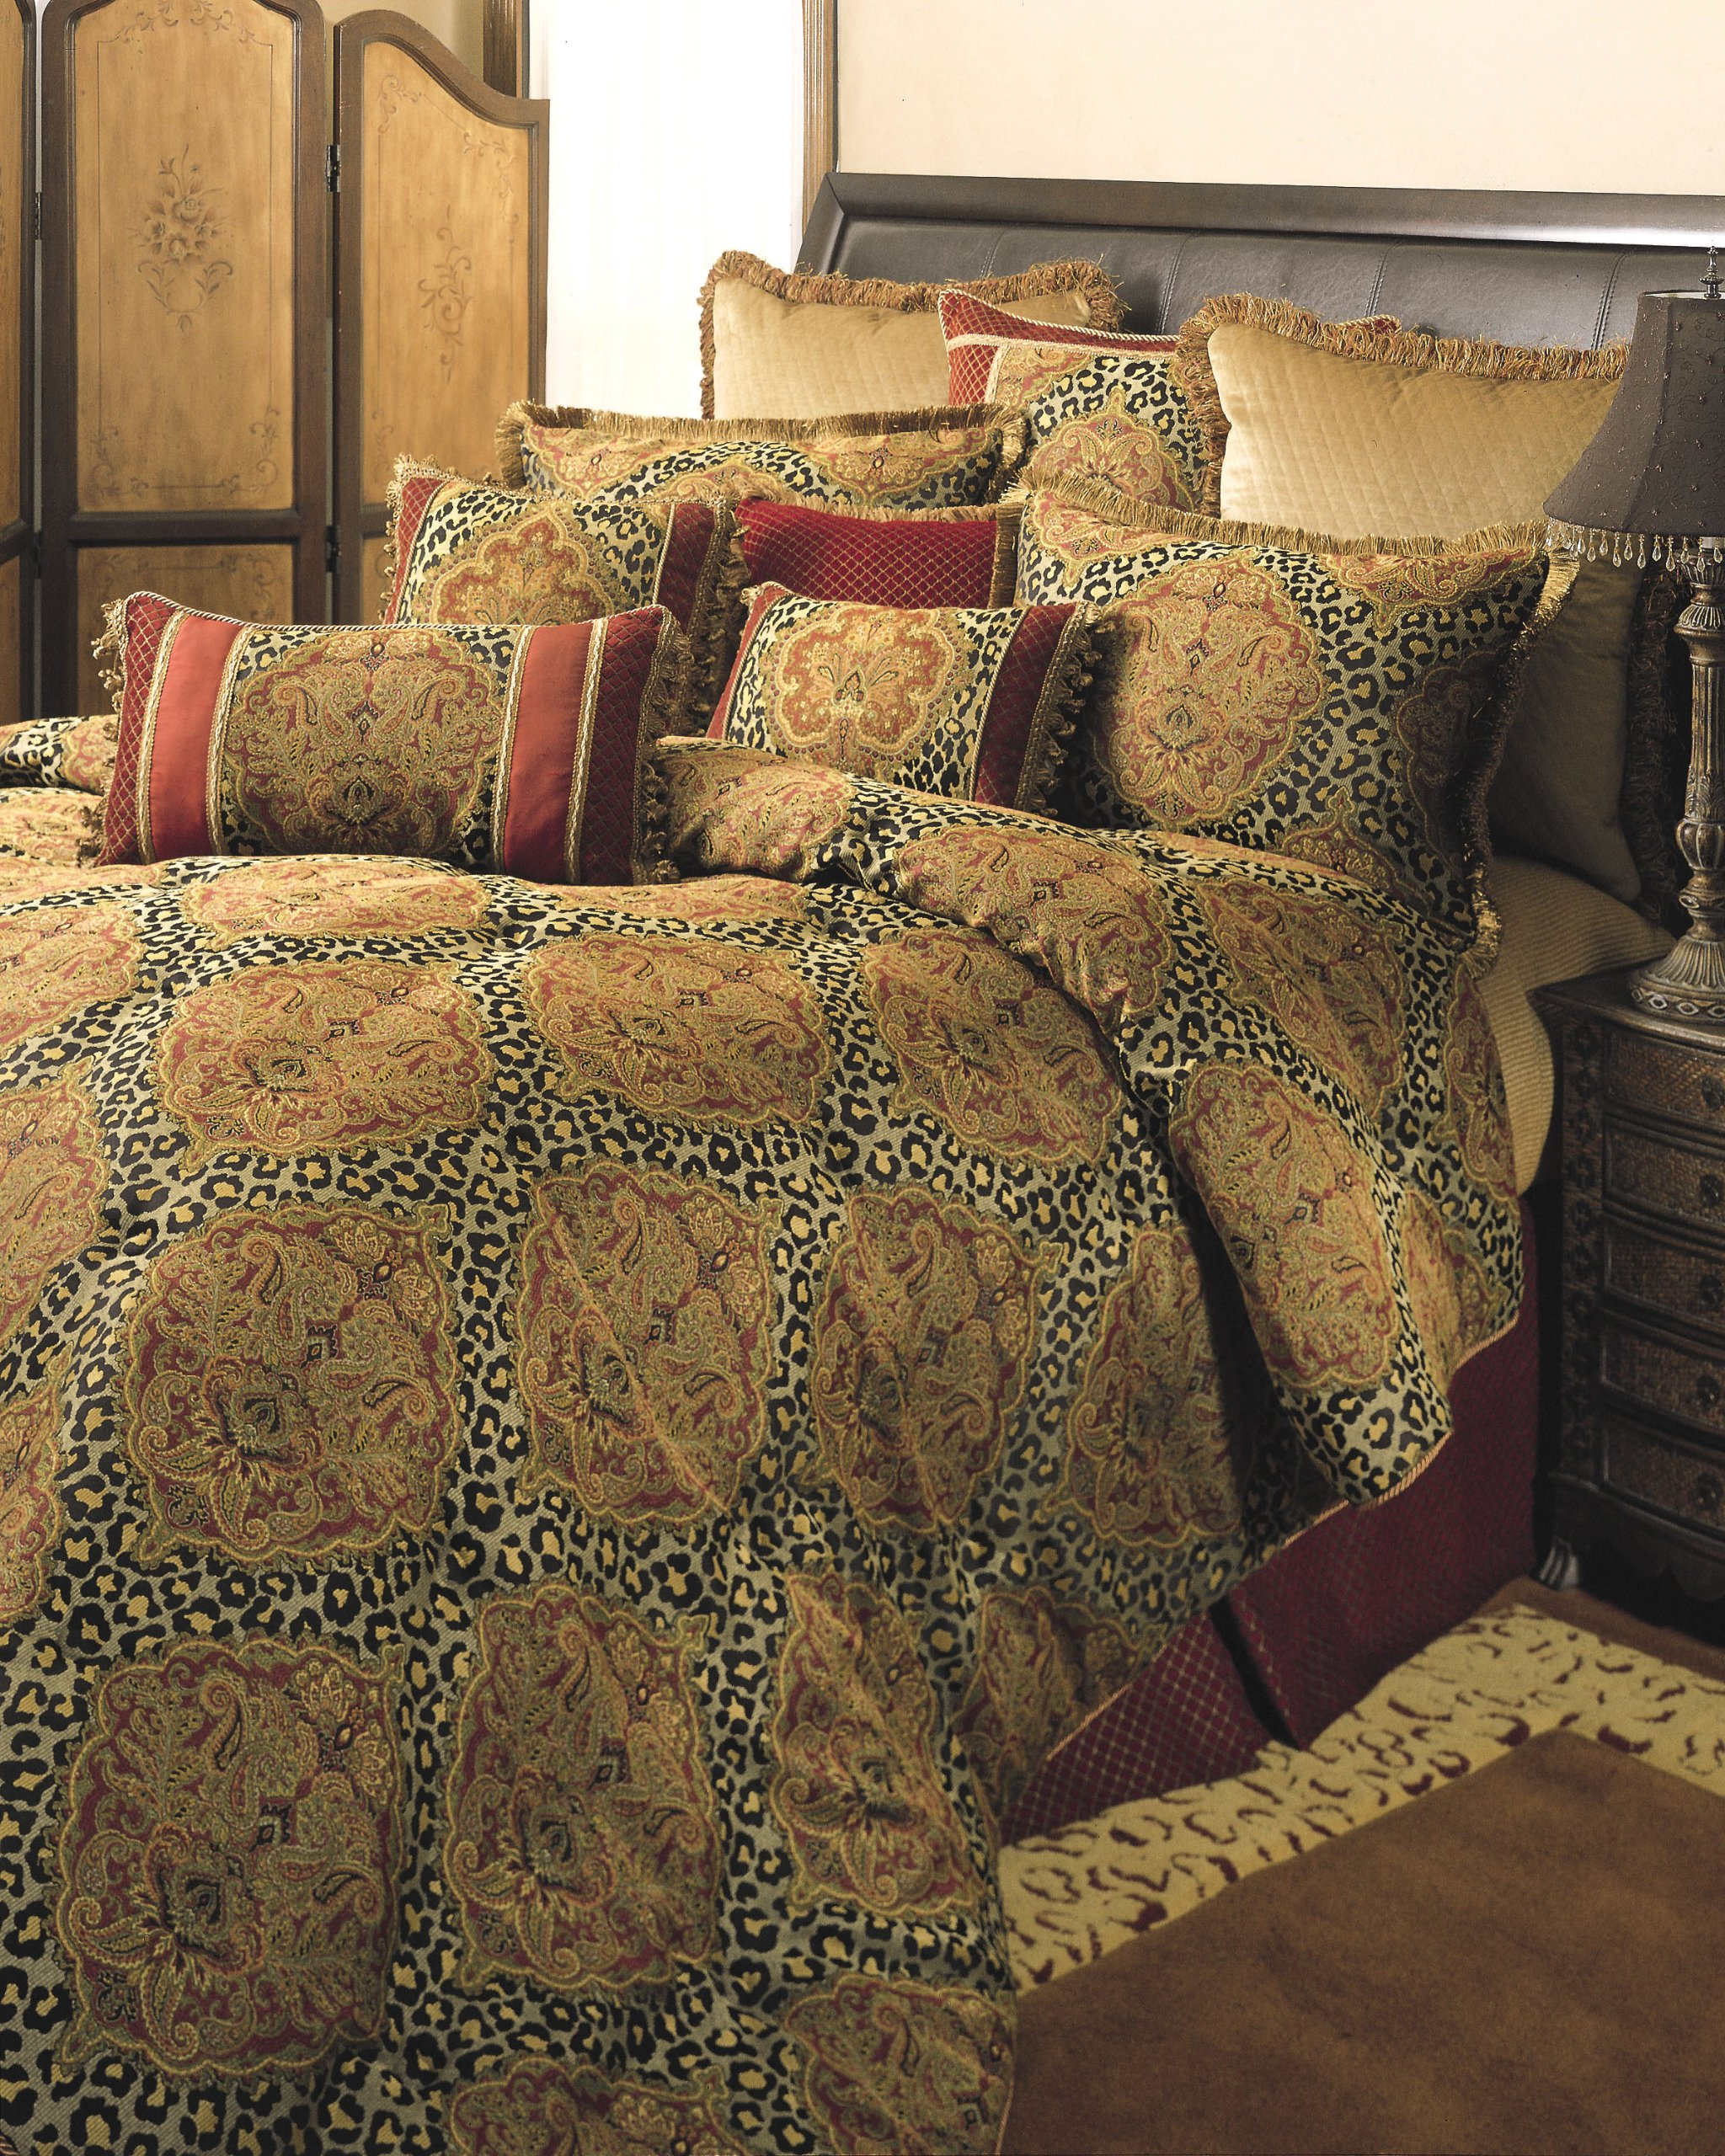 Sherry Kline Tangiers Comforter Set, King,Gold/Bronze, 4 Piece - Bedding features a dramatic mix of damask and leopard spot and includes accents of red and gold chenille and velvet Set includes comforter, bedskirt, and two shams Comforter fabric:100-percent polyester - comforter-sets, bedroom-sheets-comforters, bedroom - A11kUbqrXoL -